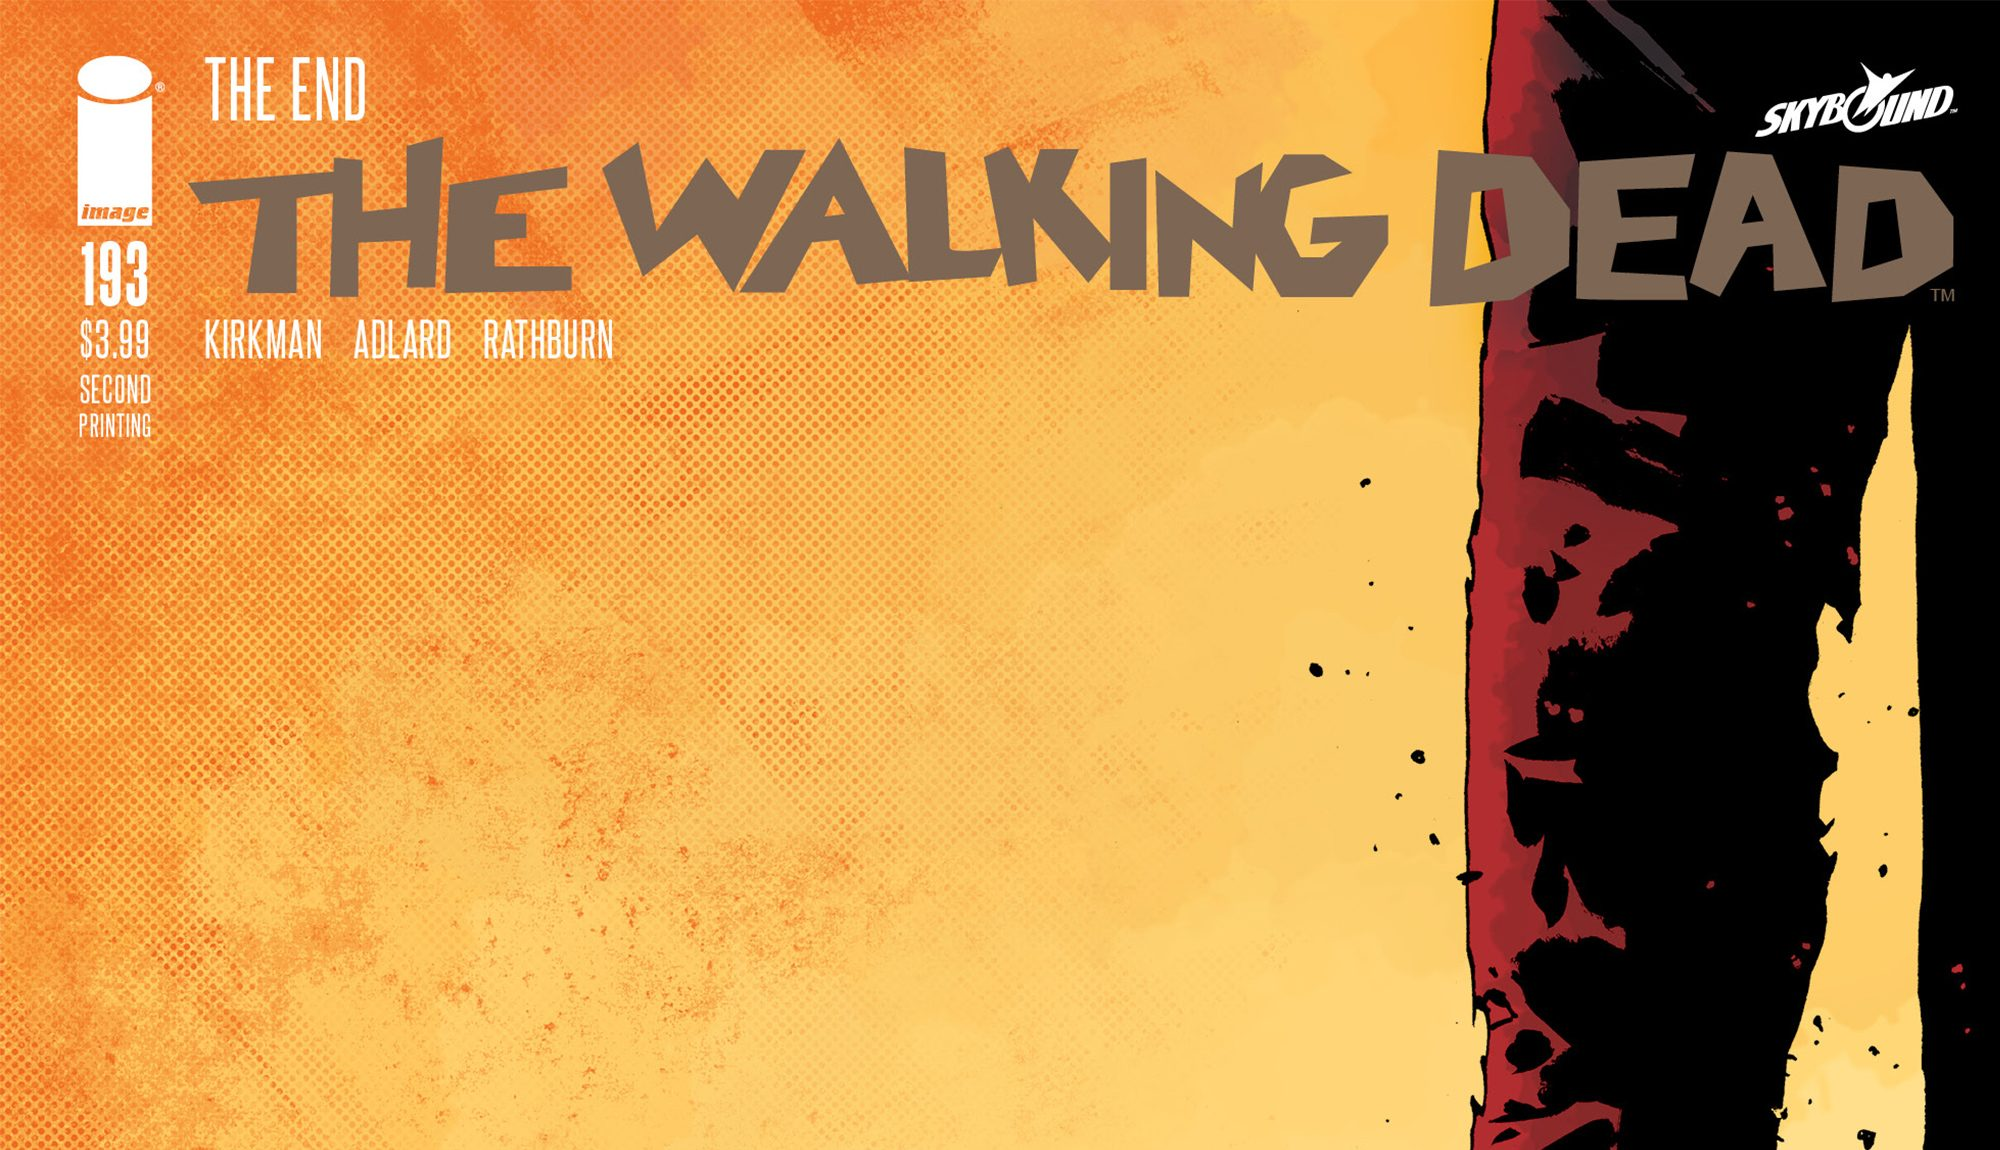 The Walking Dead Issue 193 Rushed Back For Second Printing